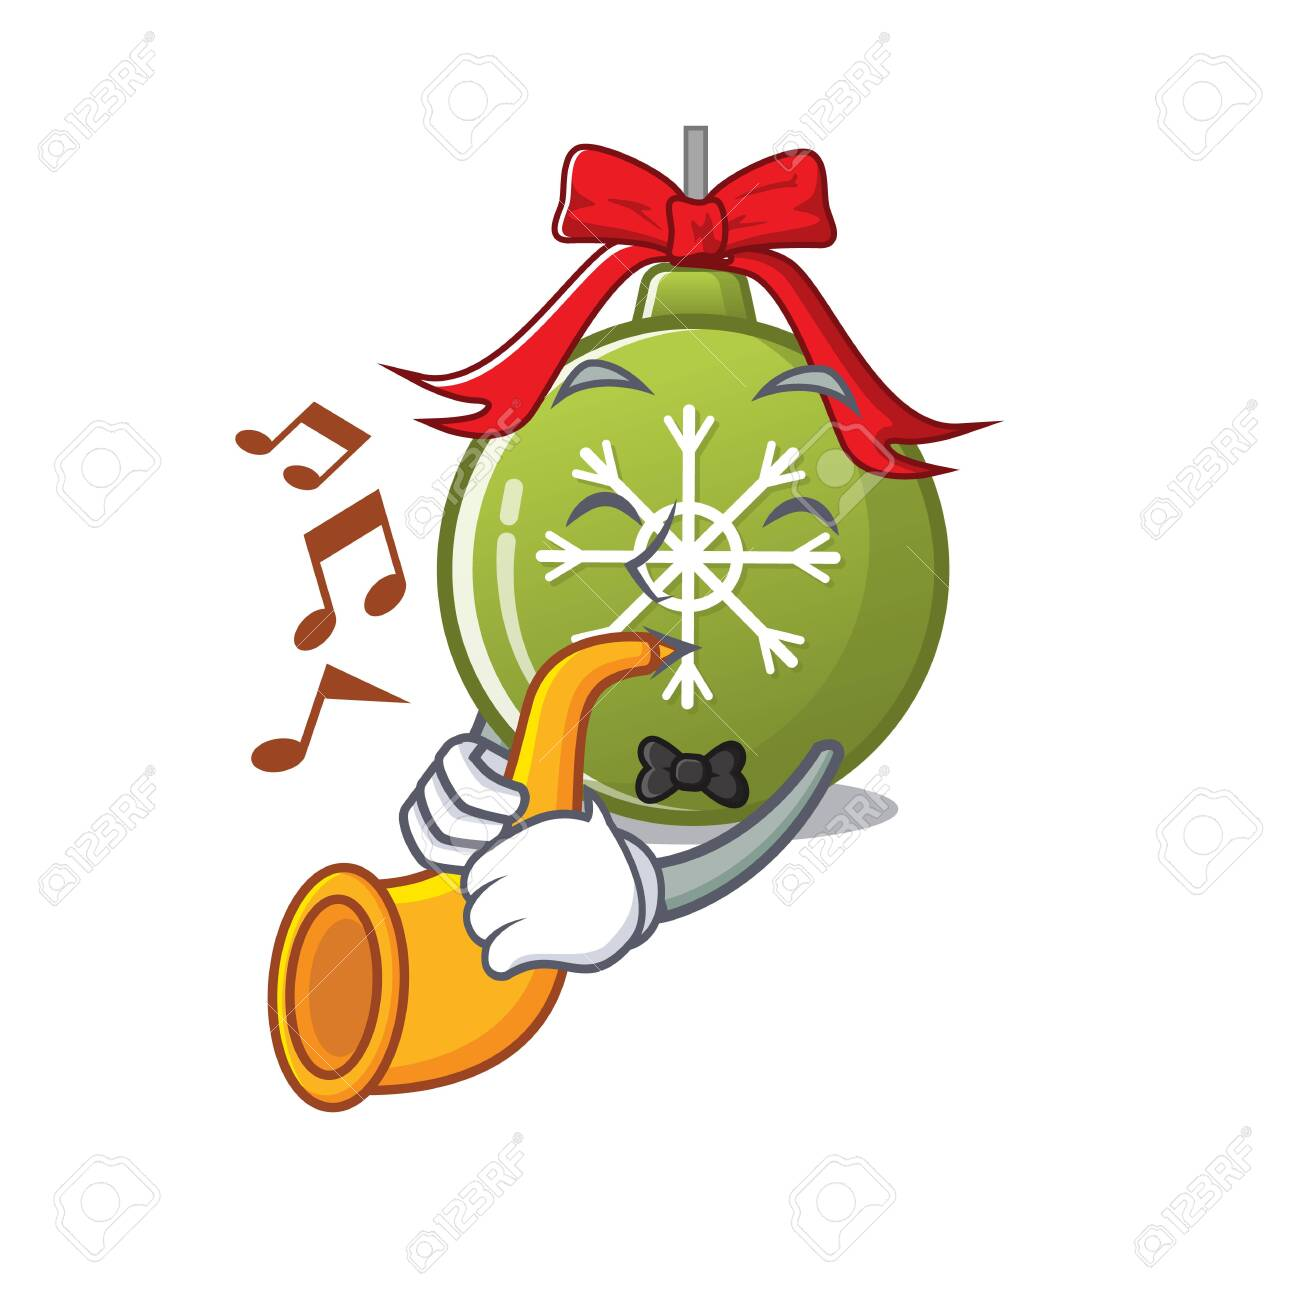 Christmas Trumpet Images.With Trumpet Christmas Ball Green With Mascot Shape Vector Illustration